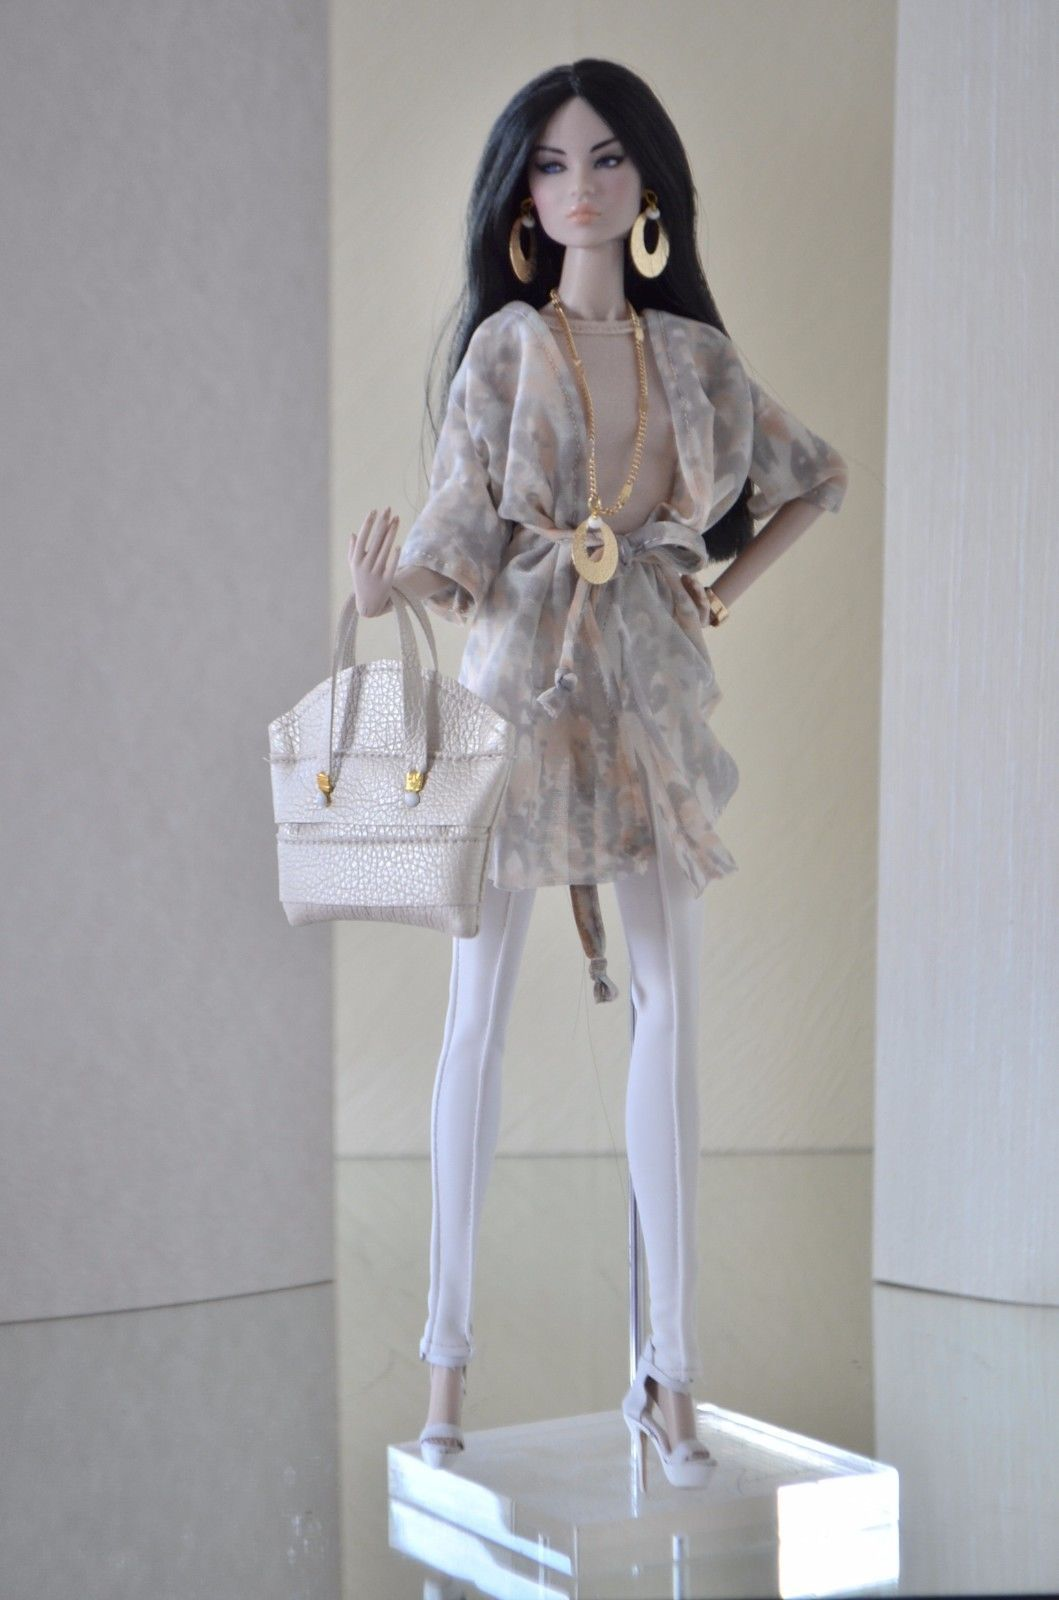 Elenpriv OOAK Outfit for Fashion Royalty FR2 Doll Clothes 15 eBay 23